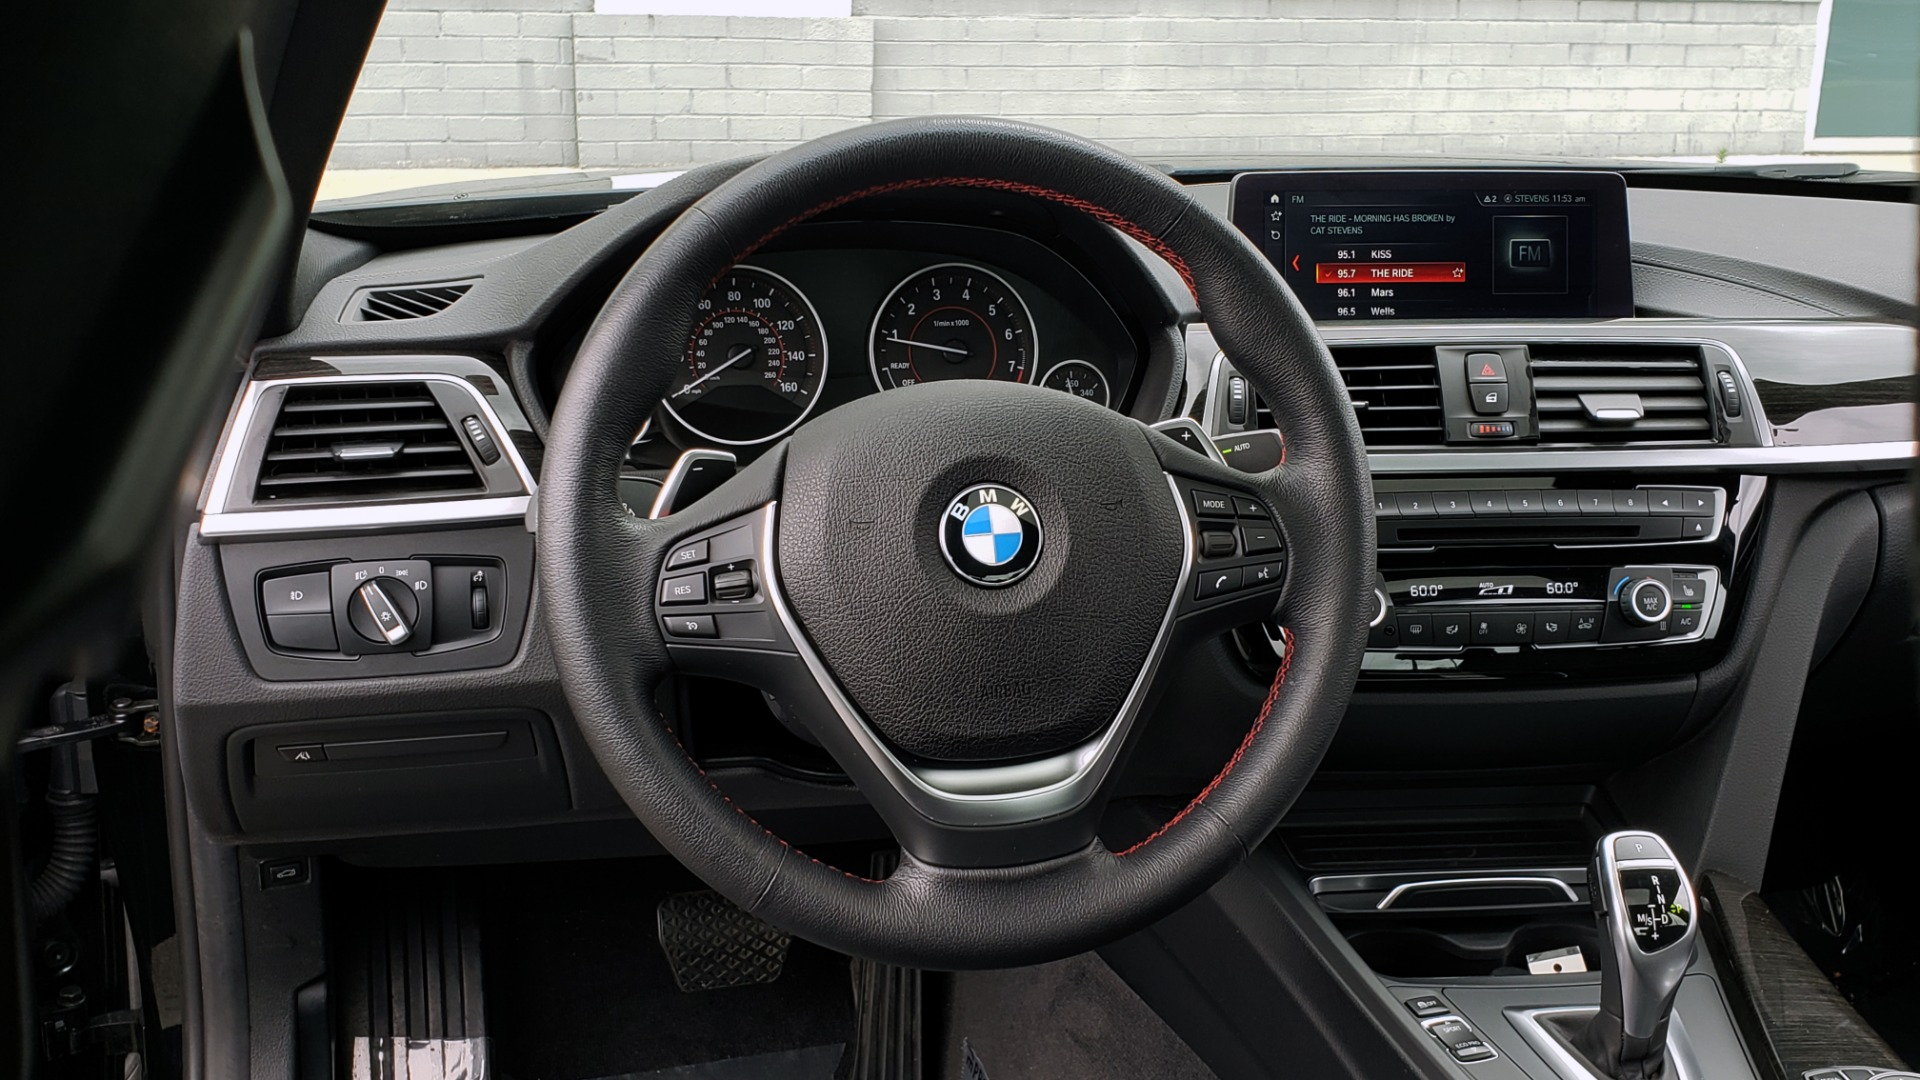 Used 2018 BMW 3 SERIES 330IXDRIVE / CONV PKG / NAV / SUNROOF / HTD STS / REARVIEW for sale $26,552 at Formula Imports in Charlotte NC 28227 38